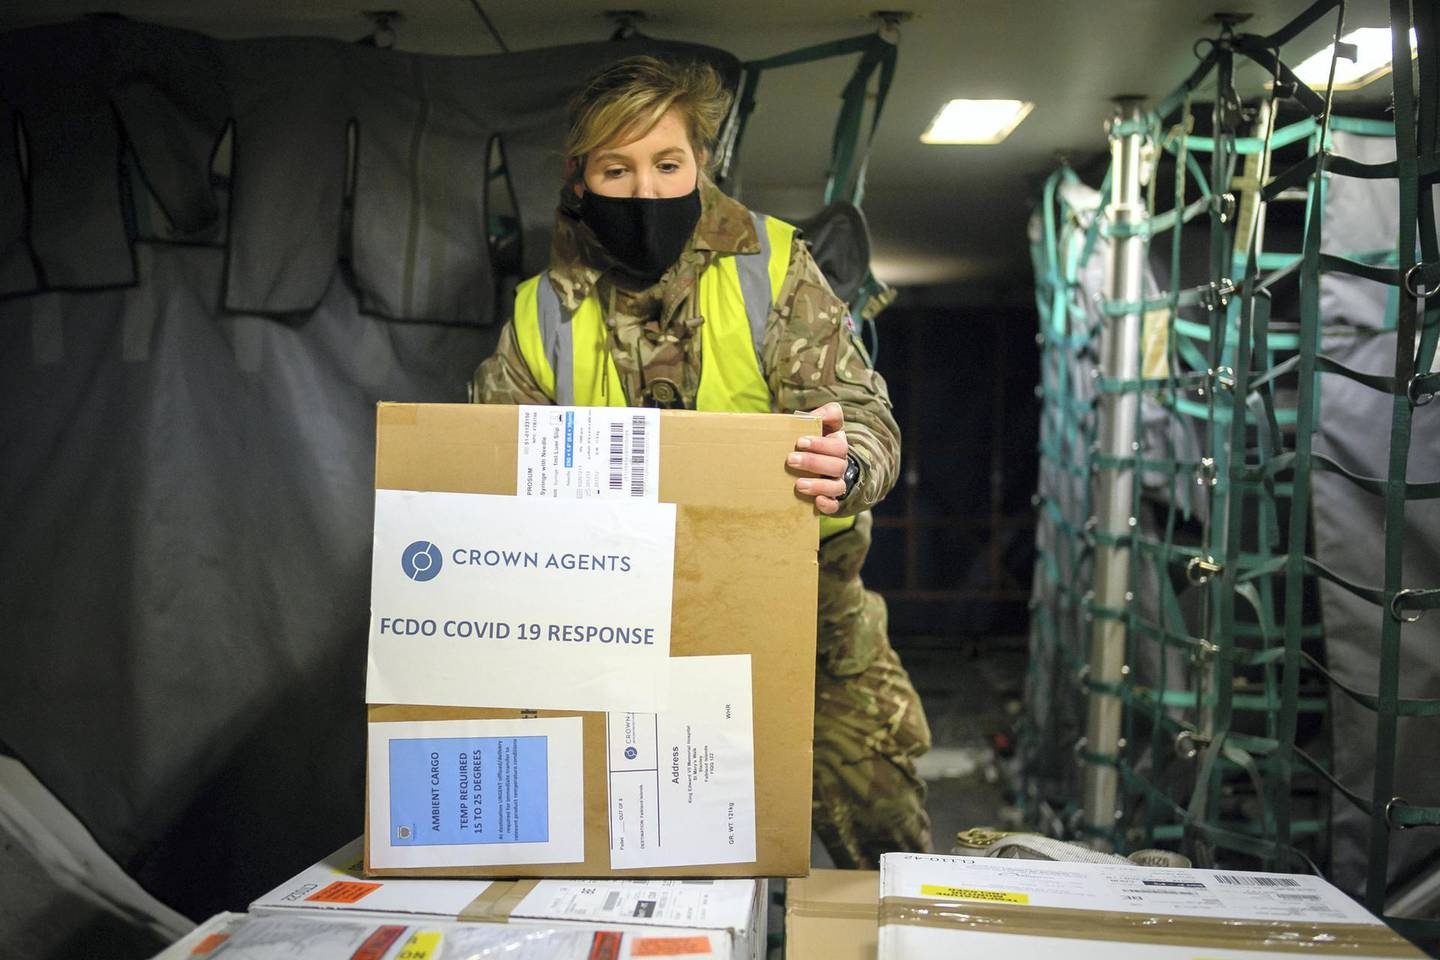 BRIZE NORTON, ENGLAND - FEBRUARY 01: RAF personnel load a batch of the Covid-19 vaccine onto a Voyager aircraft bound for the Falkland Islands at RAF Brize Norton on February 01, 2021 in Brize Norton, England. The British armed forces are handling delivery of the first batch of the Oxford-AstraZeneca Covid-19 vaccines to the residents of the Falkland Islands, with a flight leaving RAF Brize Norton in the early hours of February 1, 2021. The British military operation to support the Foreign Commonwealth and Development Office is addressing the COVID-19 pandemic overseas, primarily in the British Overseas Territories, such as the Falkland Islands, the Ascension Islands and Gibraltar. (Photo by Leon Neal/Getty Images)